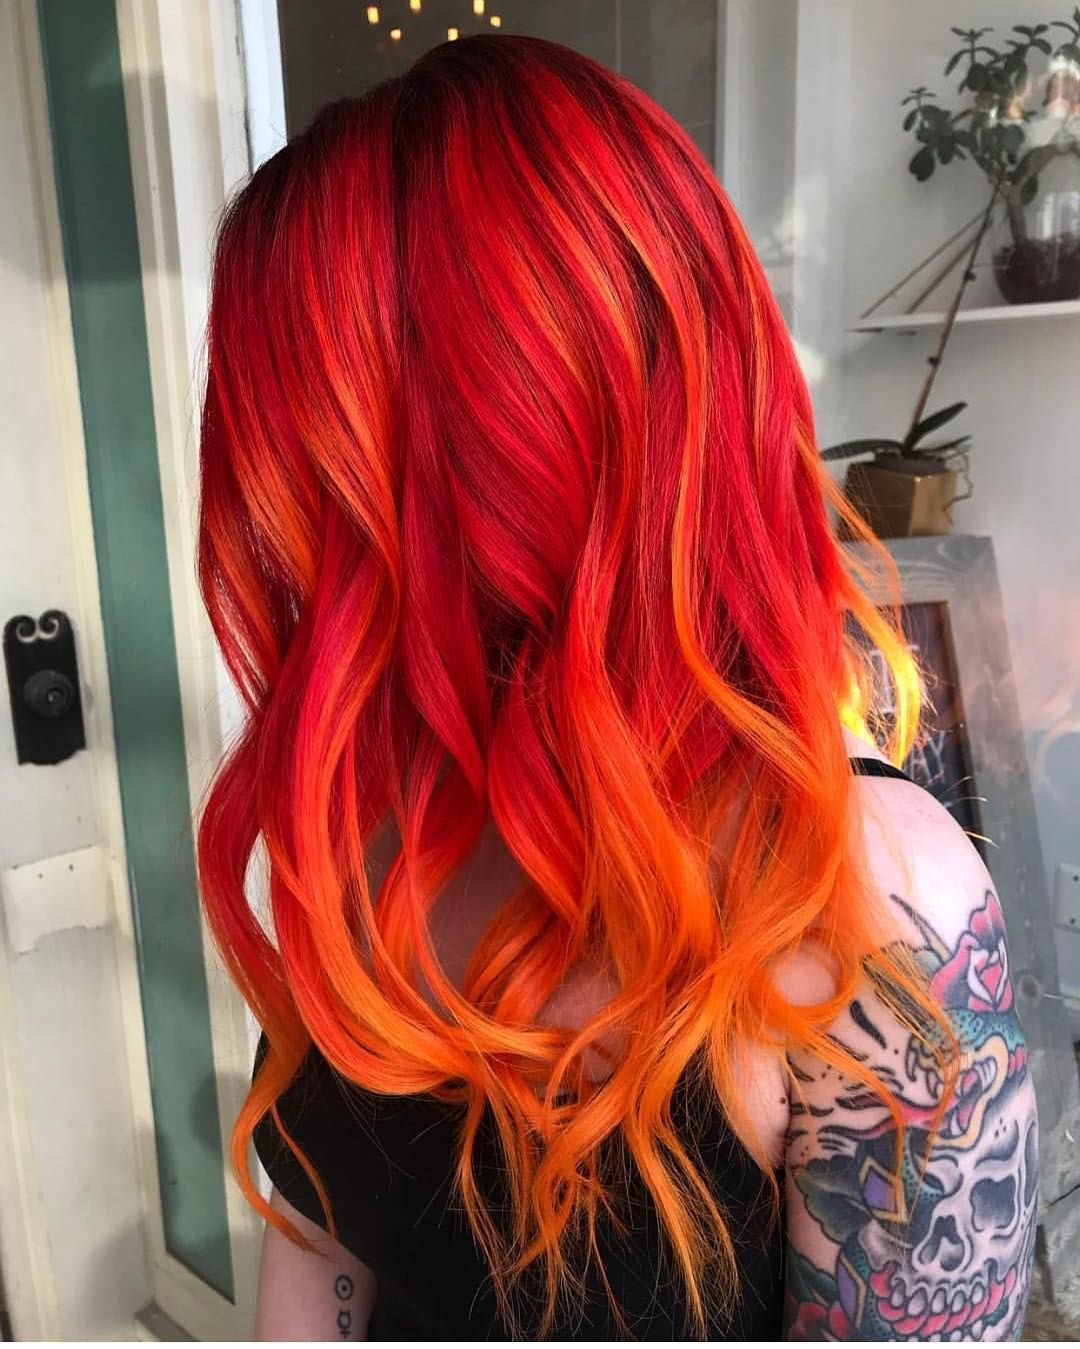 Pin by Henrietta Maihi on Hair Colours  Pinterest  Hair coloring